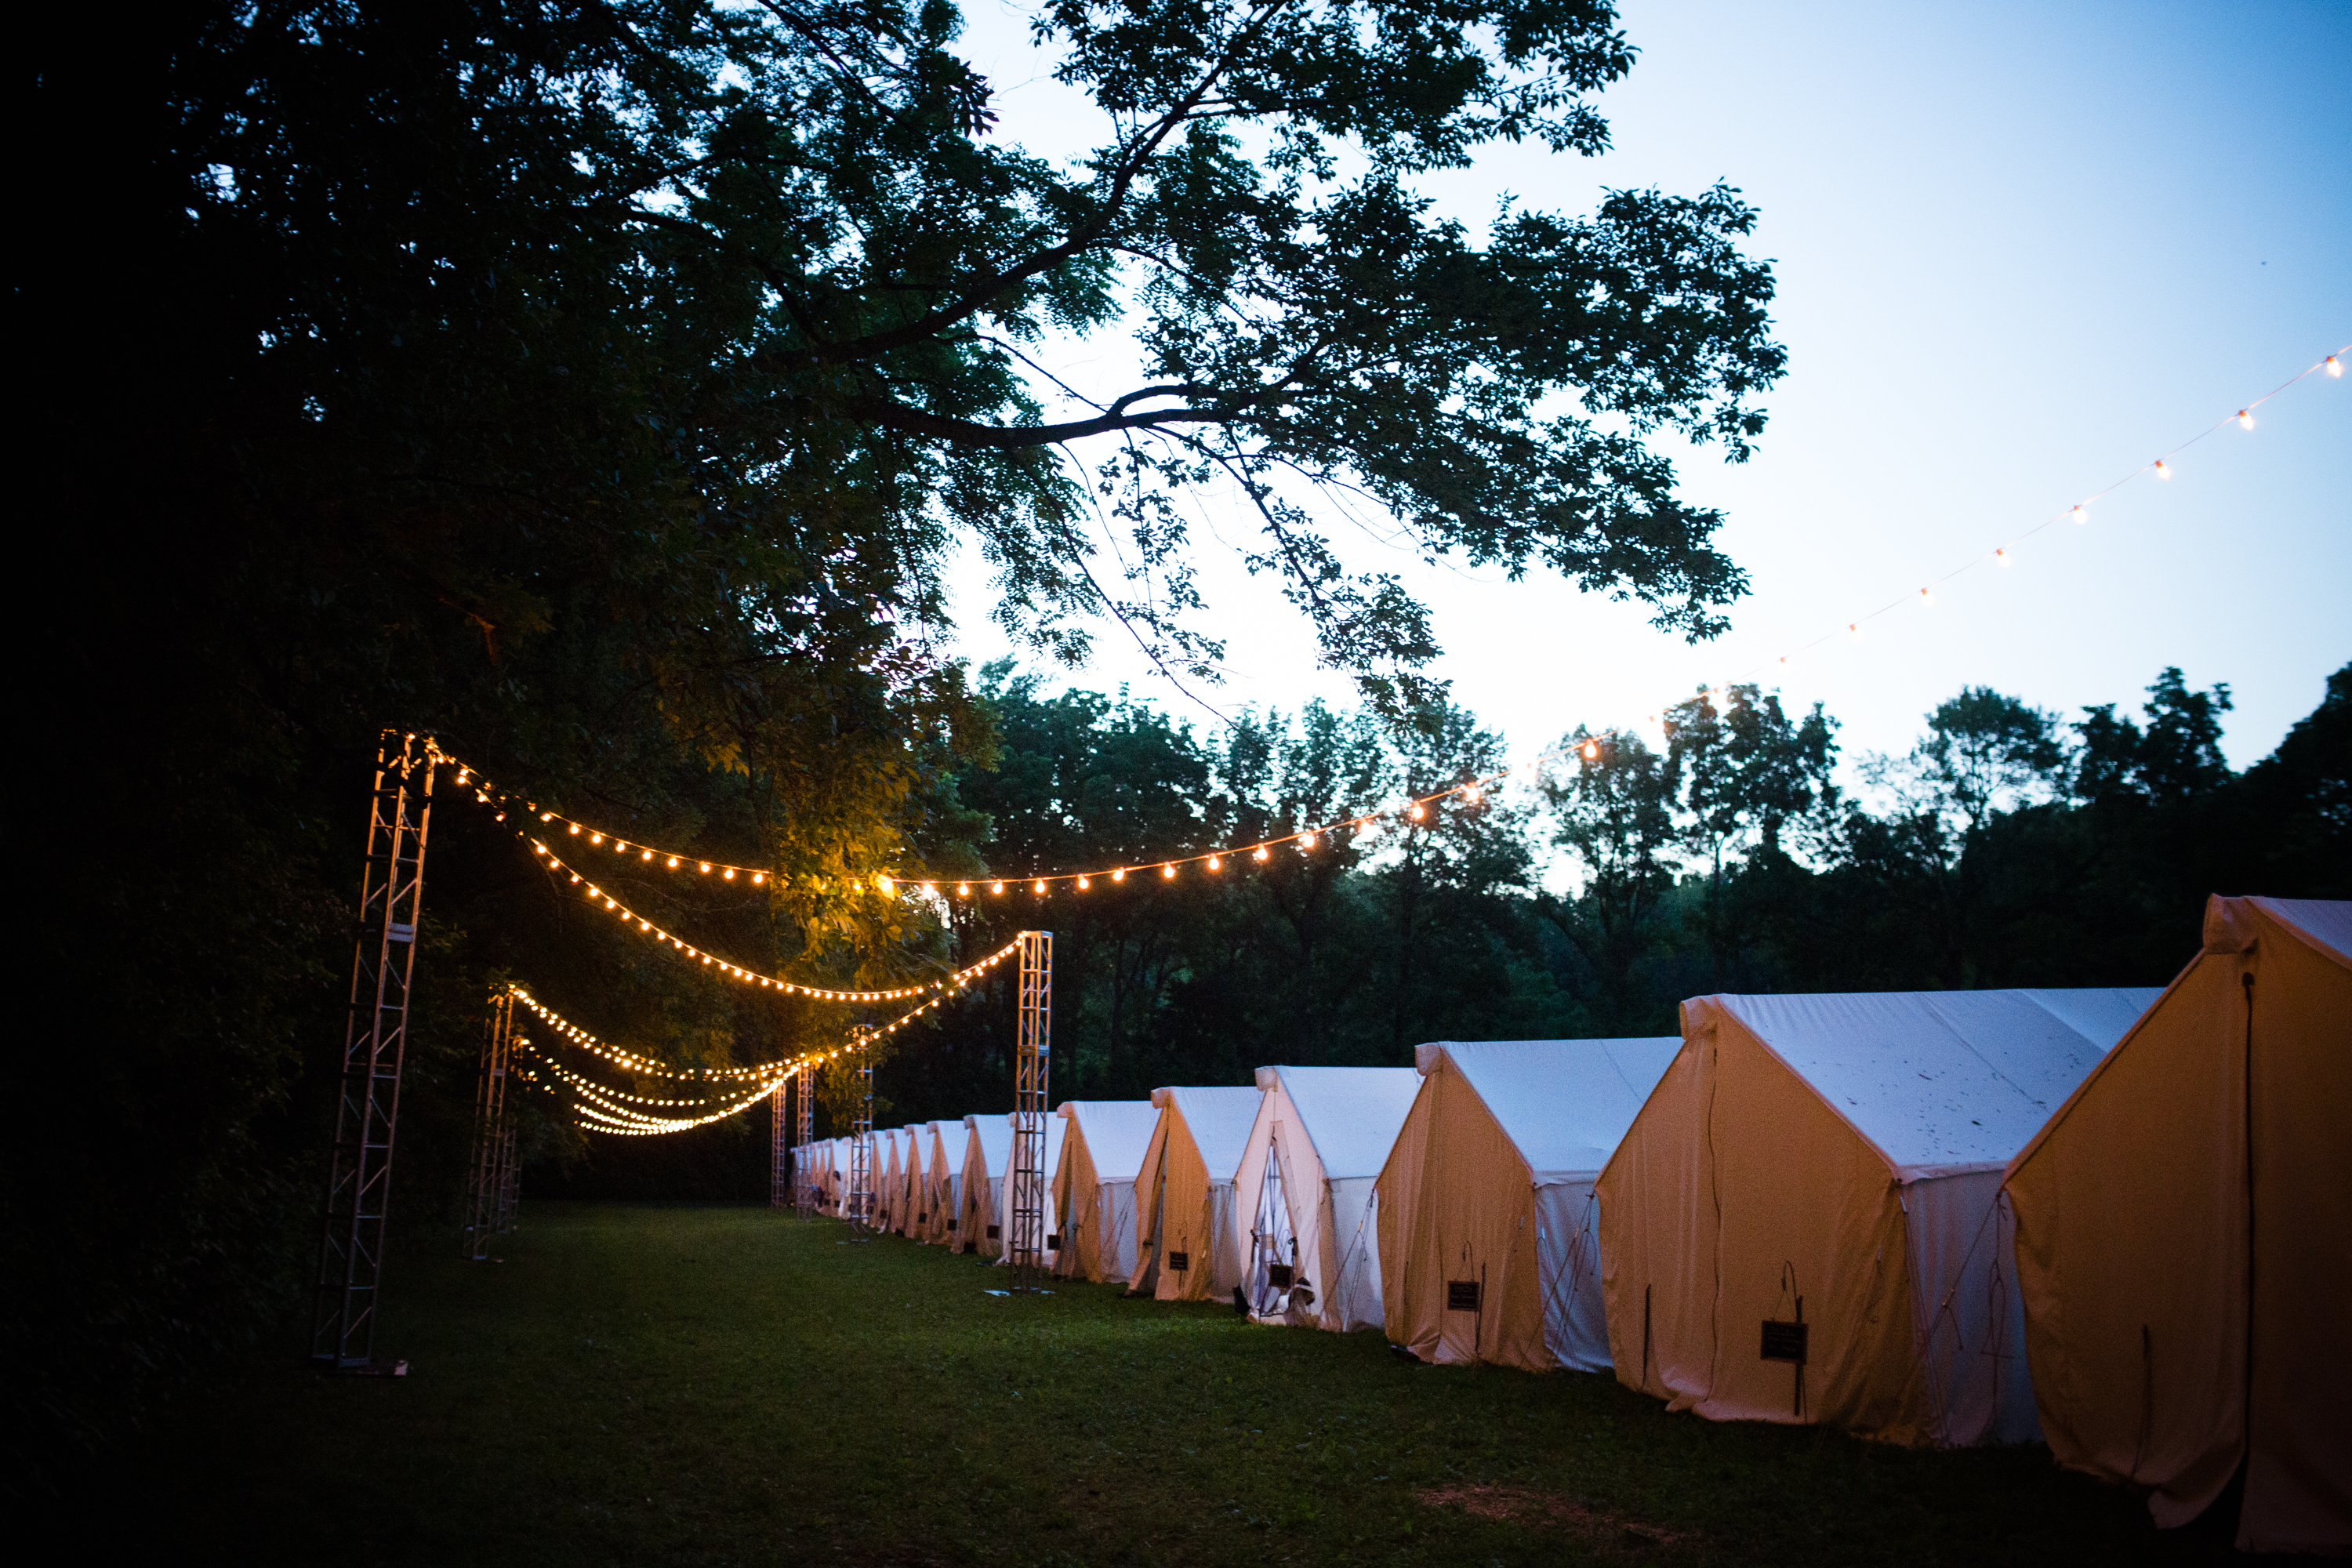 Some of the Christina Matthias and Hank Garretts guests spent the weekend staying on the farm in a cluster of tents.